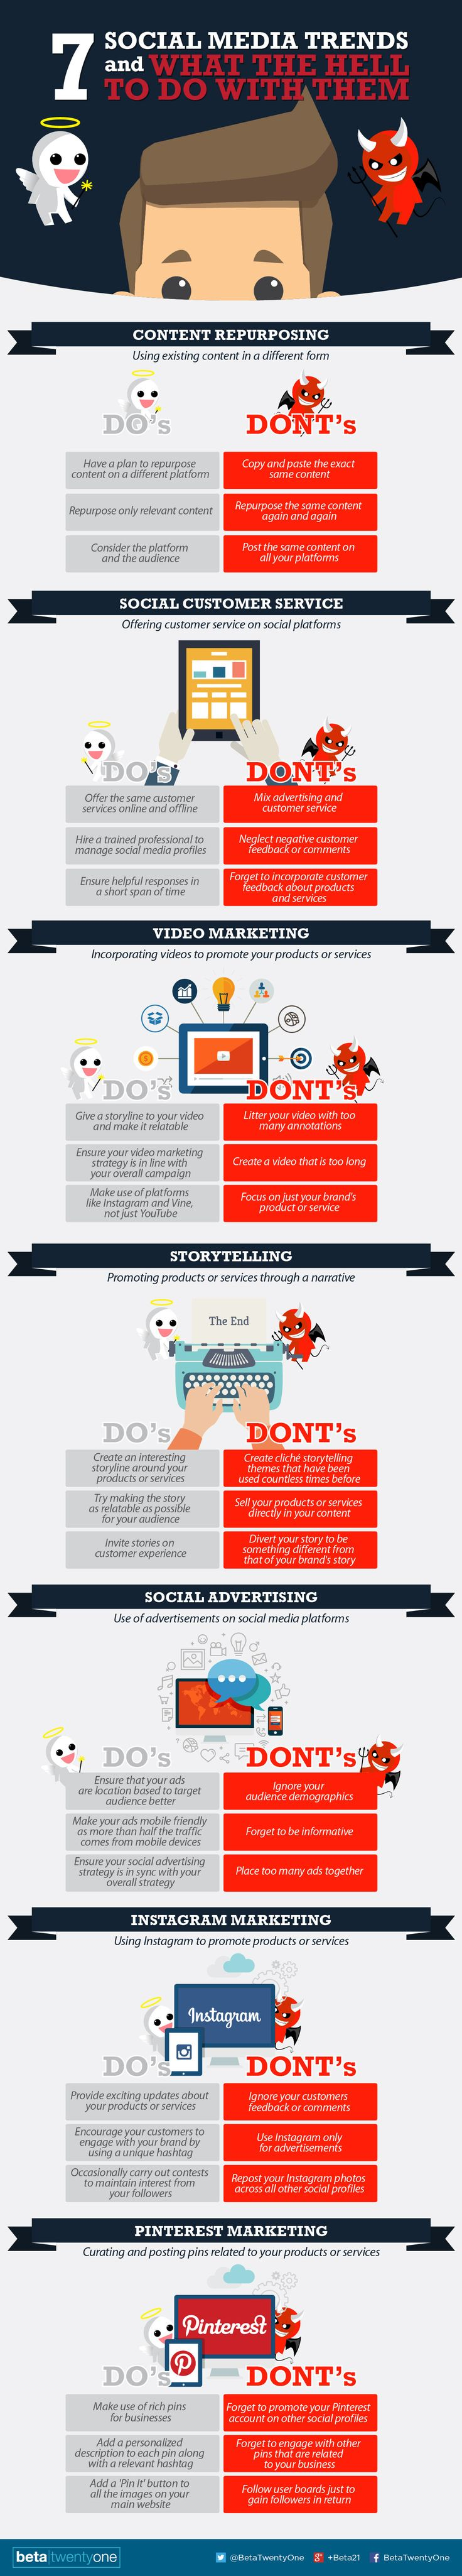 SOCIAL MEDIA - 7 #SocialMedia Trends and What The Hell To Do With Them - #marketing #infographic.